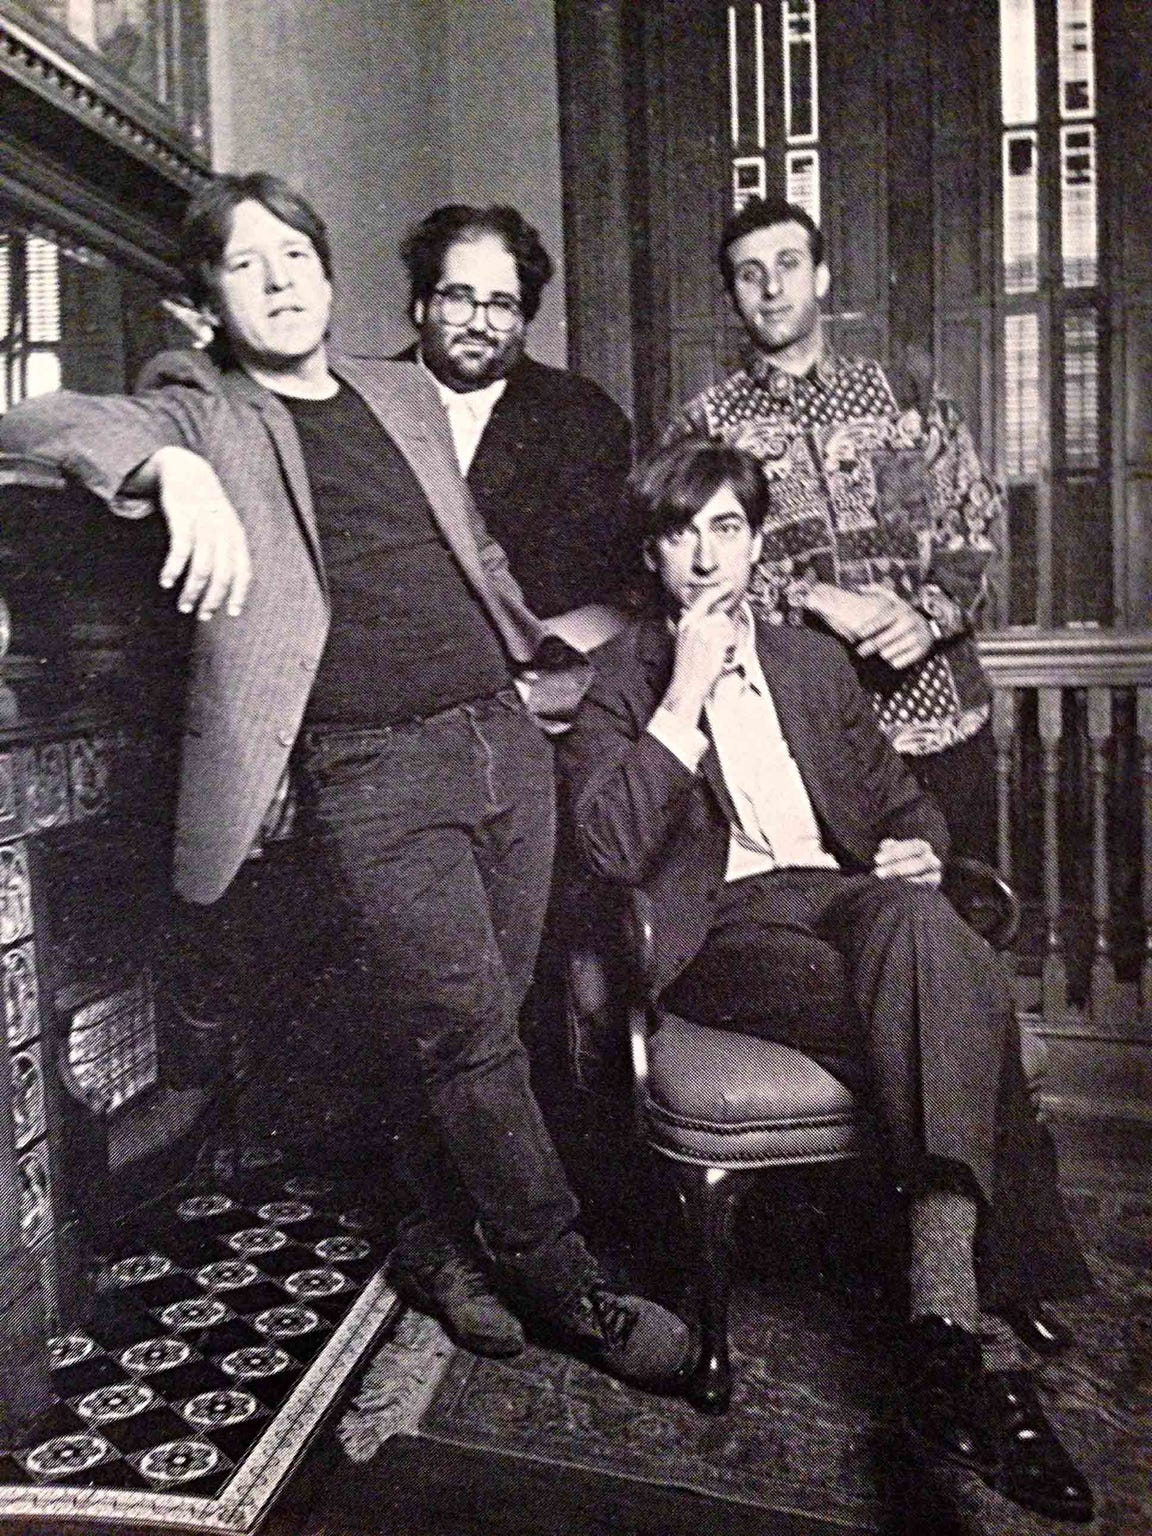 The New Dylans posing for a photo shoot in the Library Theater in Warren, PA, in 1993.